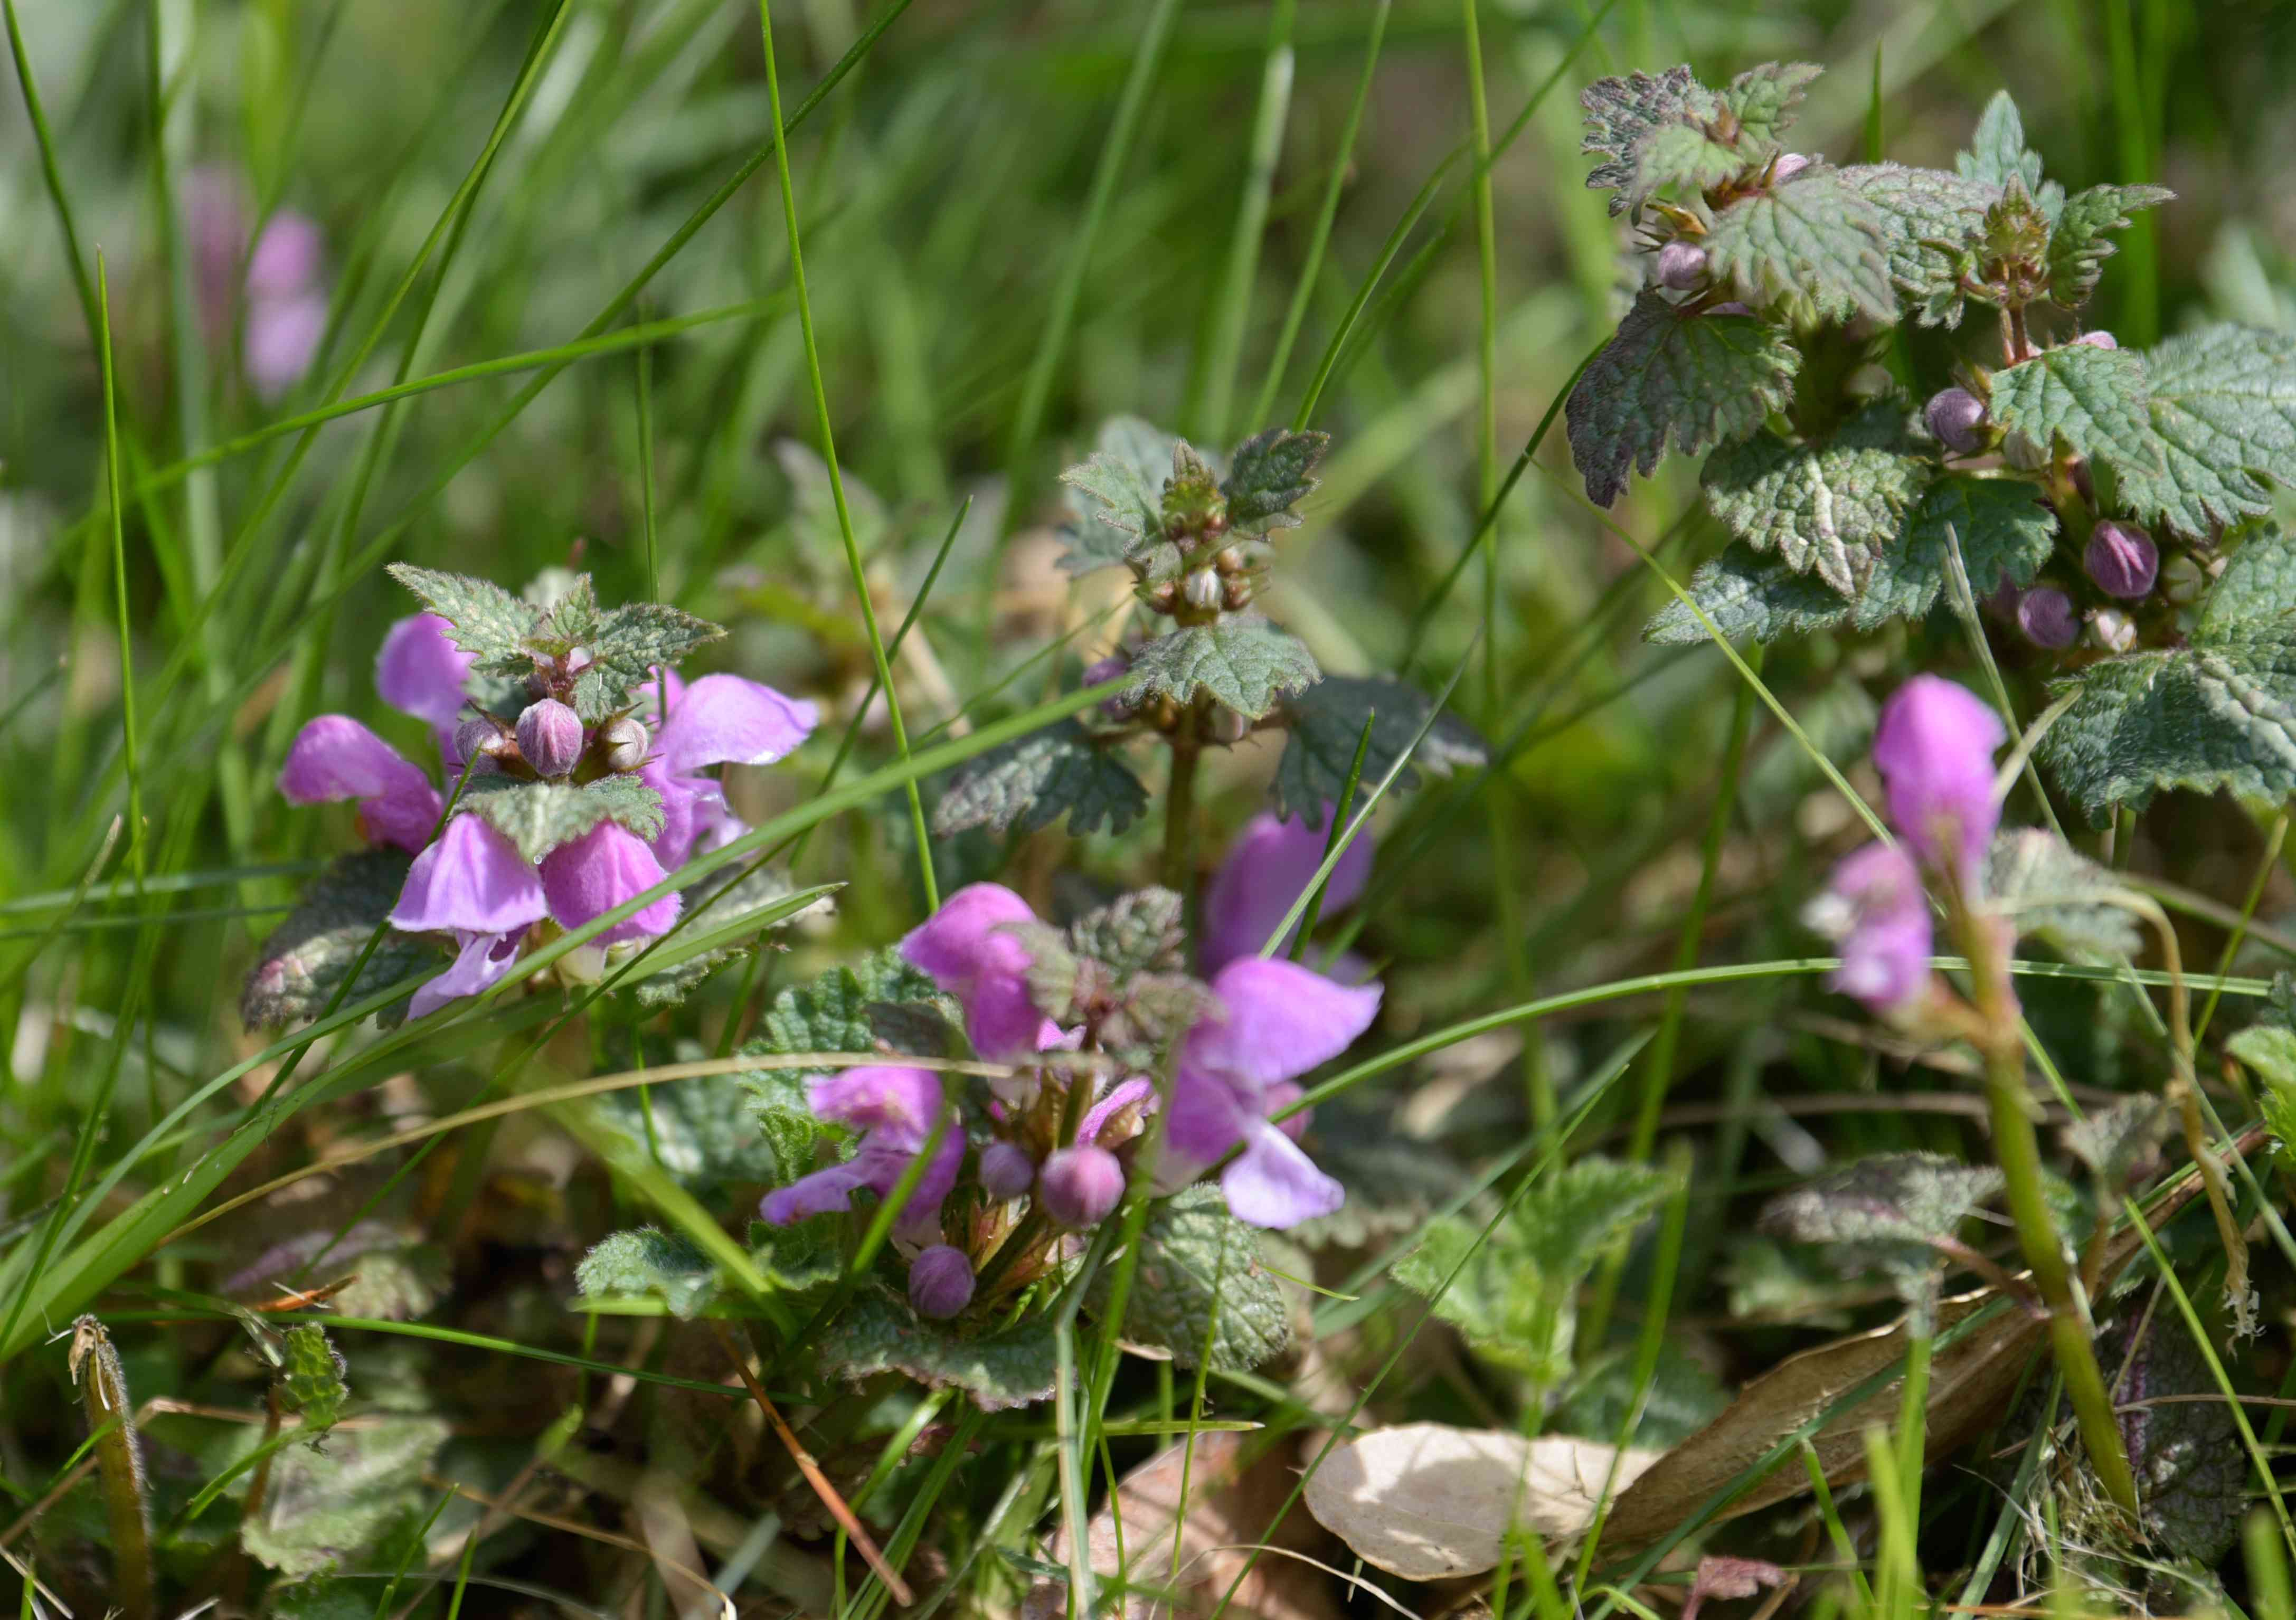 Spotted dead nettle plant with silvery green leaves and small pink flowers between grass blades in sunlight